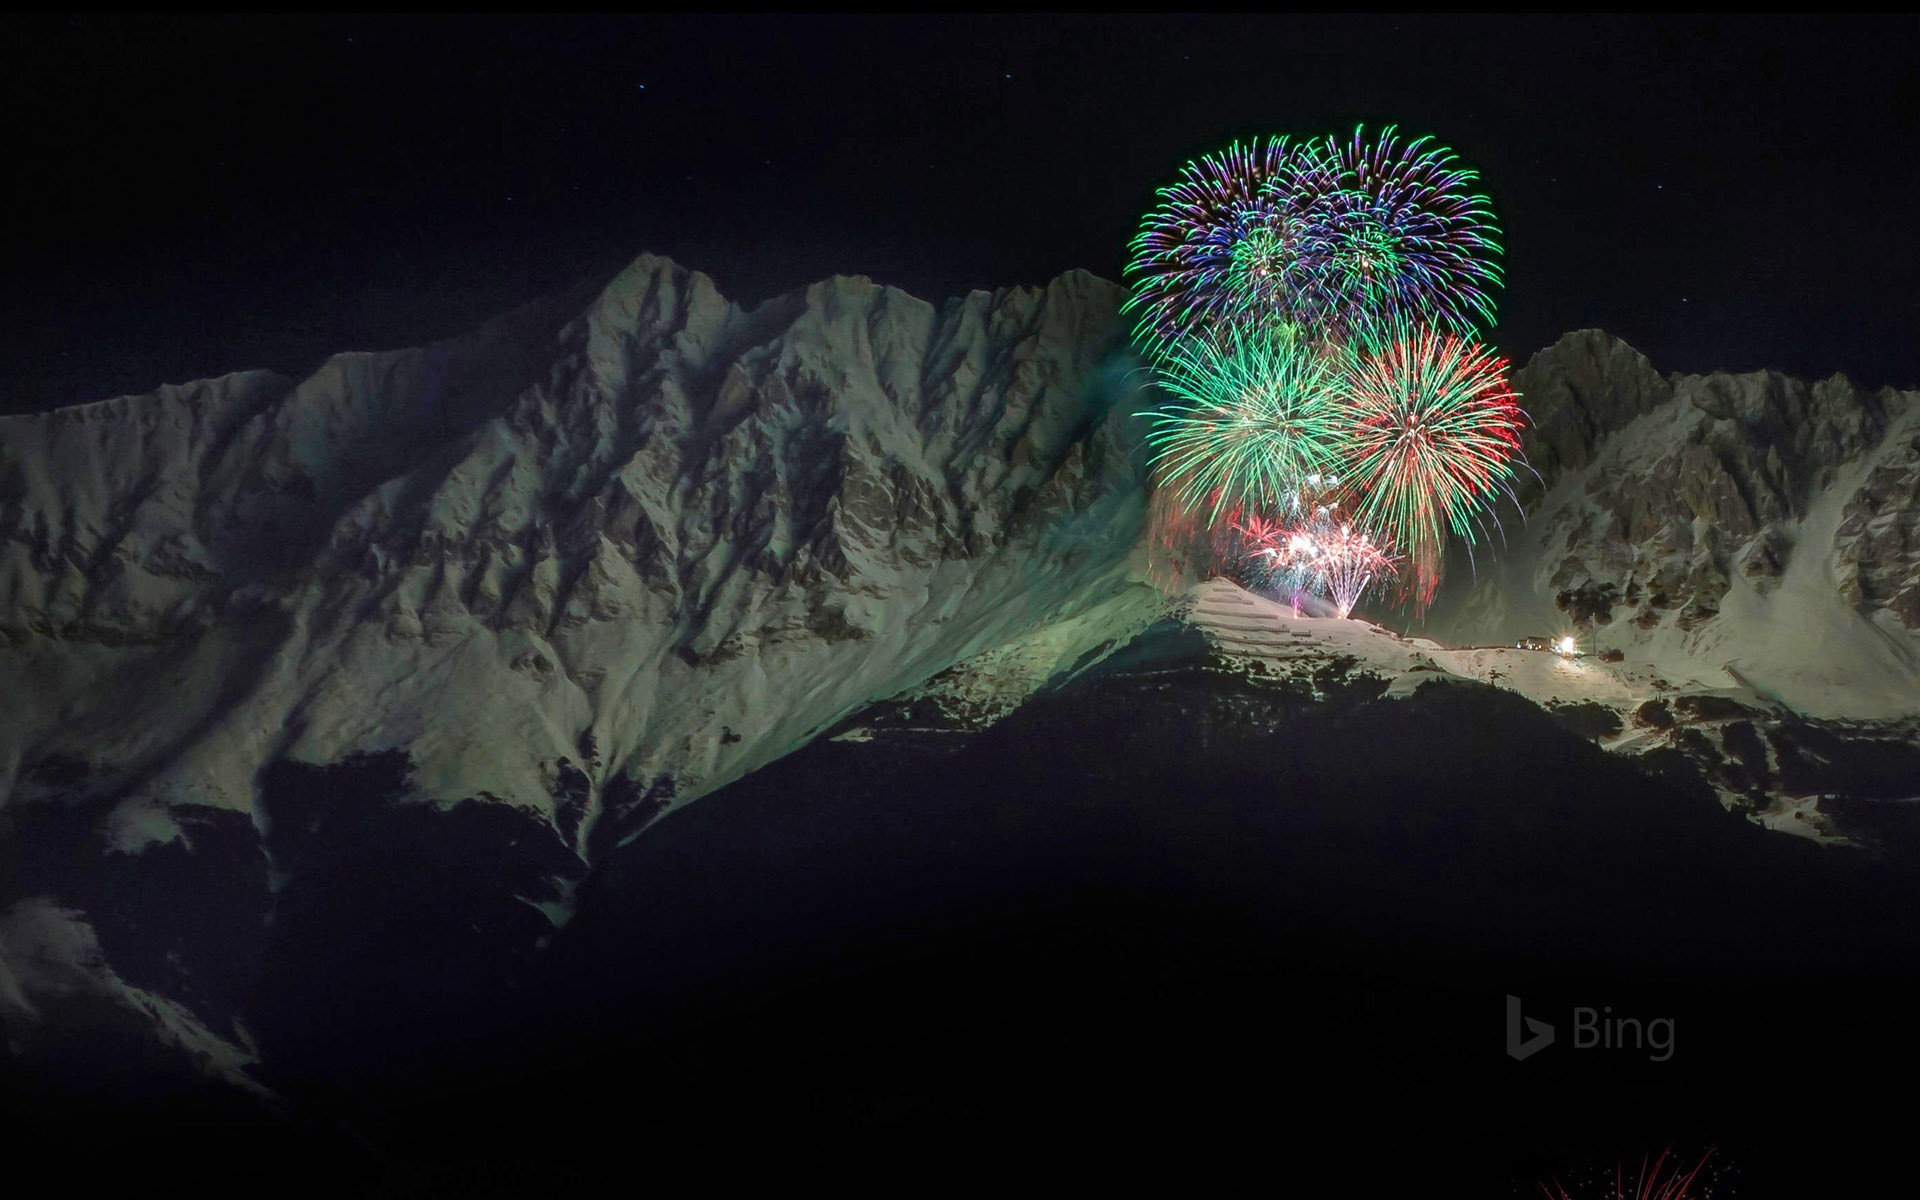 New Year's Eve fireworks in the Nordkette mountain range, Austria